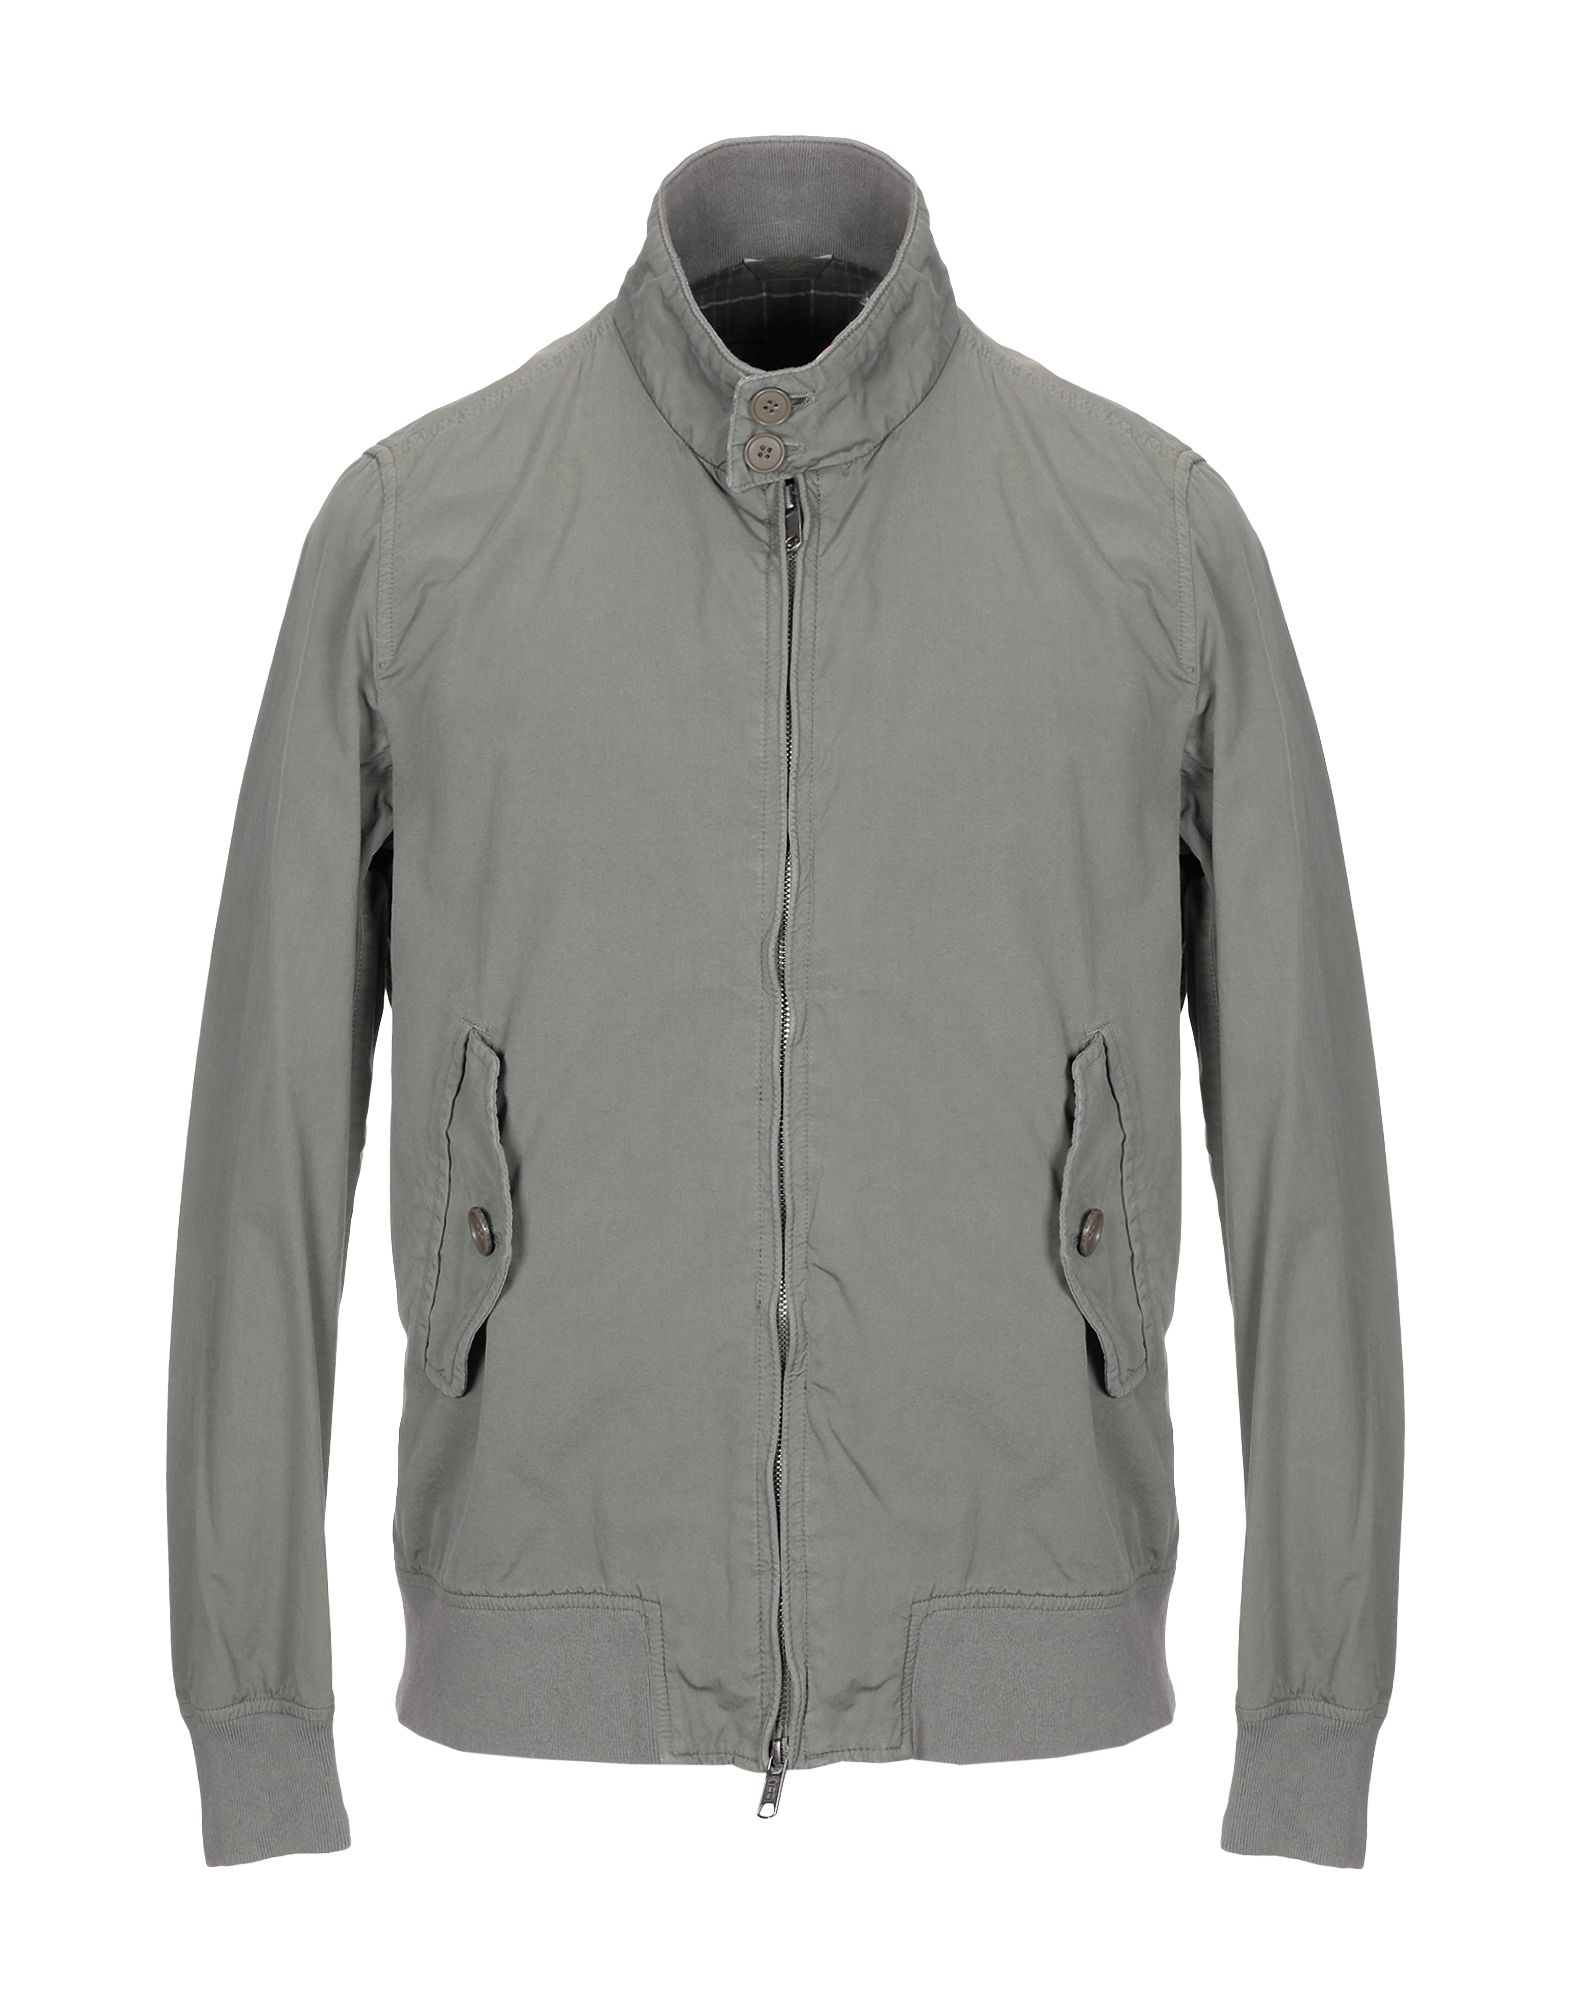 BARACUTA Jackets in Military Green